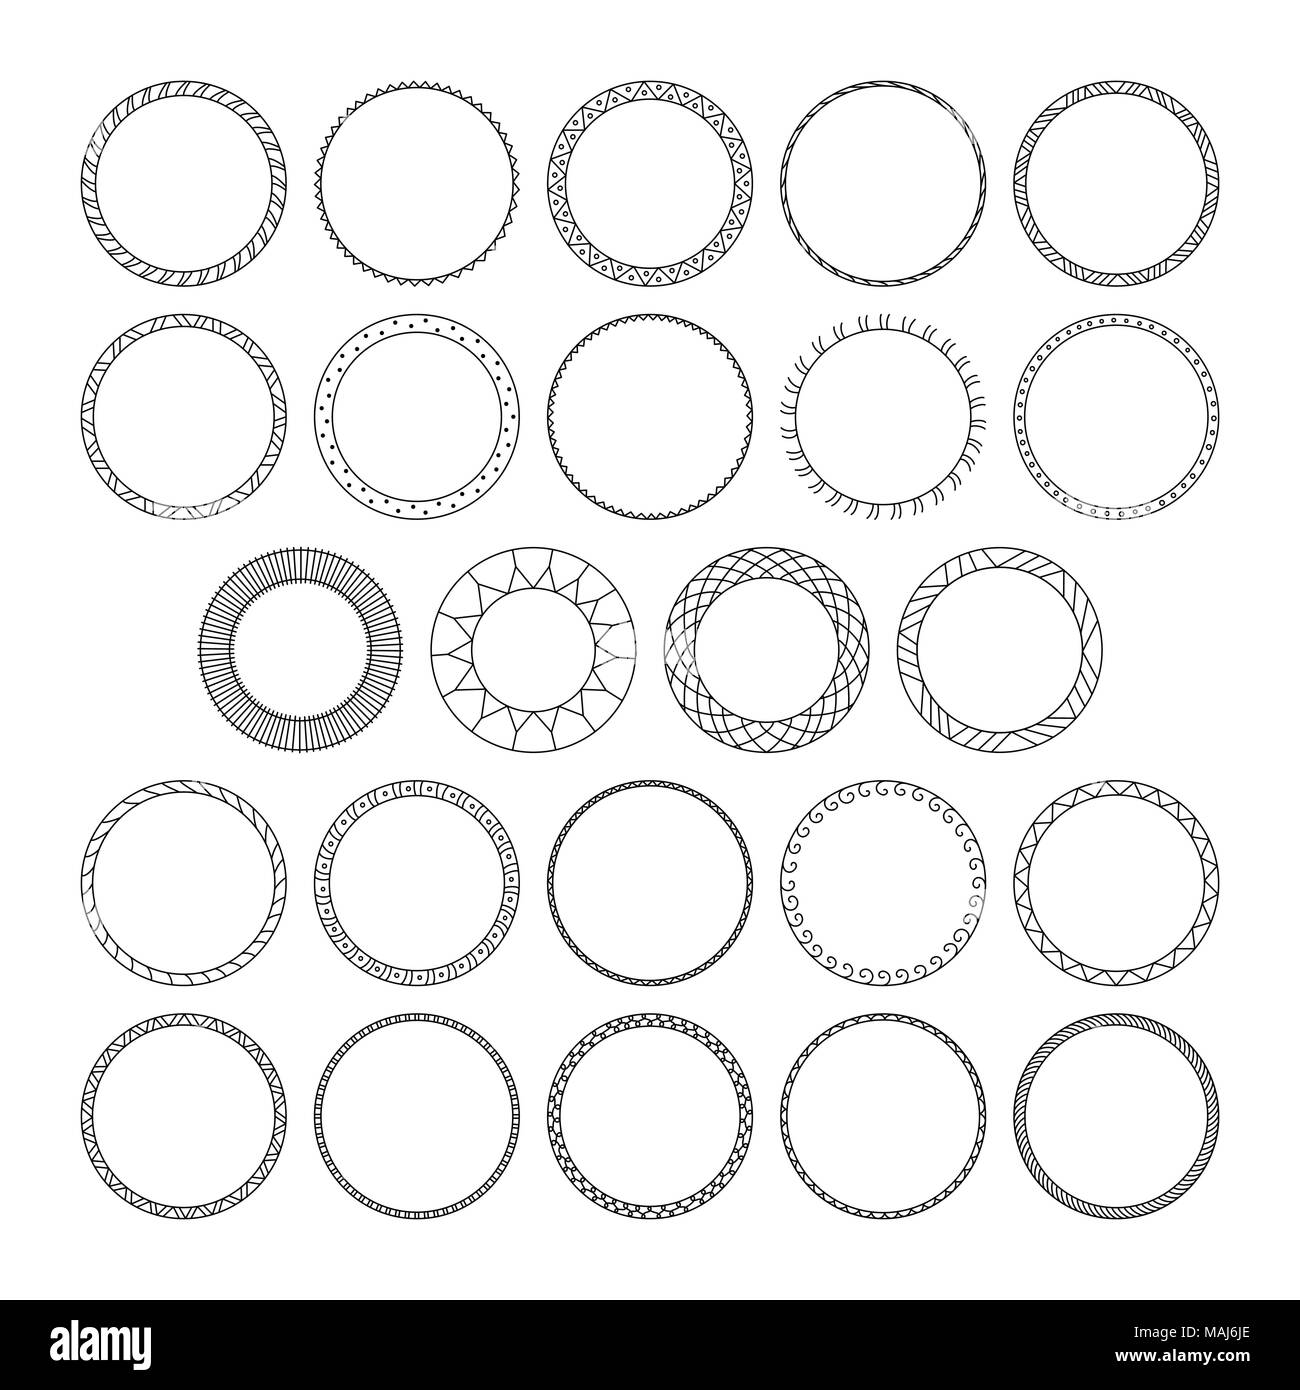 Download Vector Set Of Round And Circular Decorative Patterns For Design Frameworks And Banners Black Geometric Frame Stock Vector Image Art Alamy